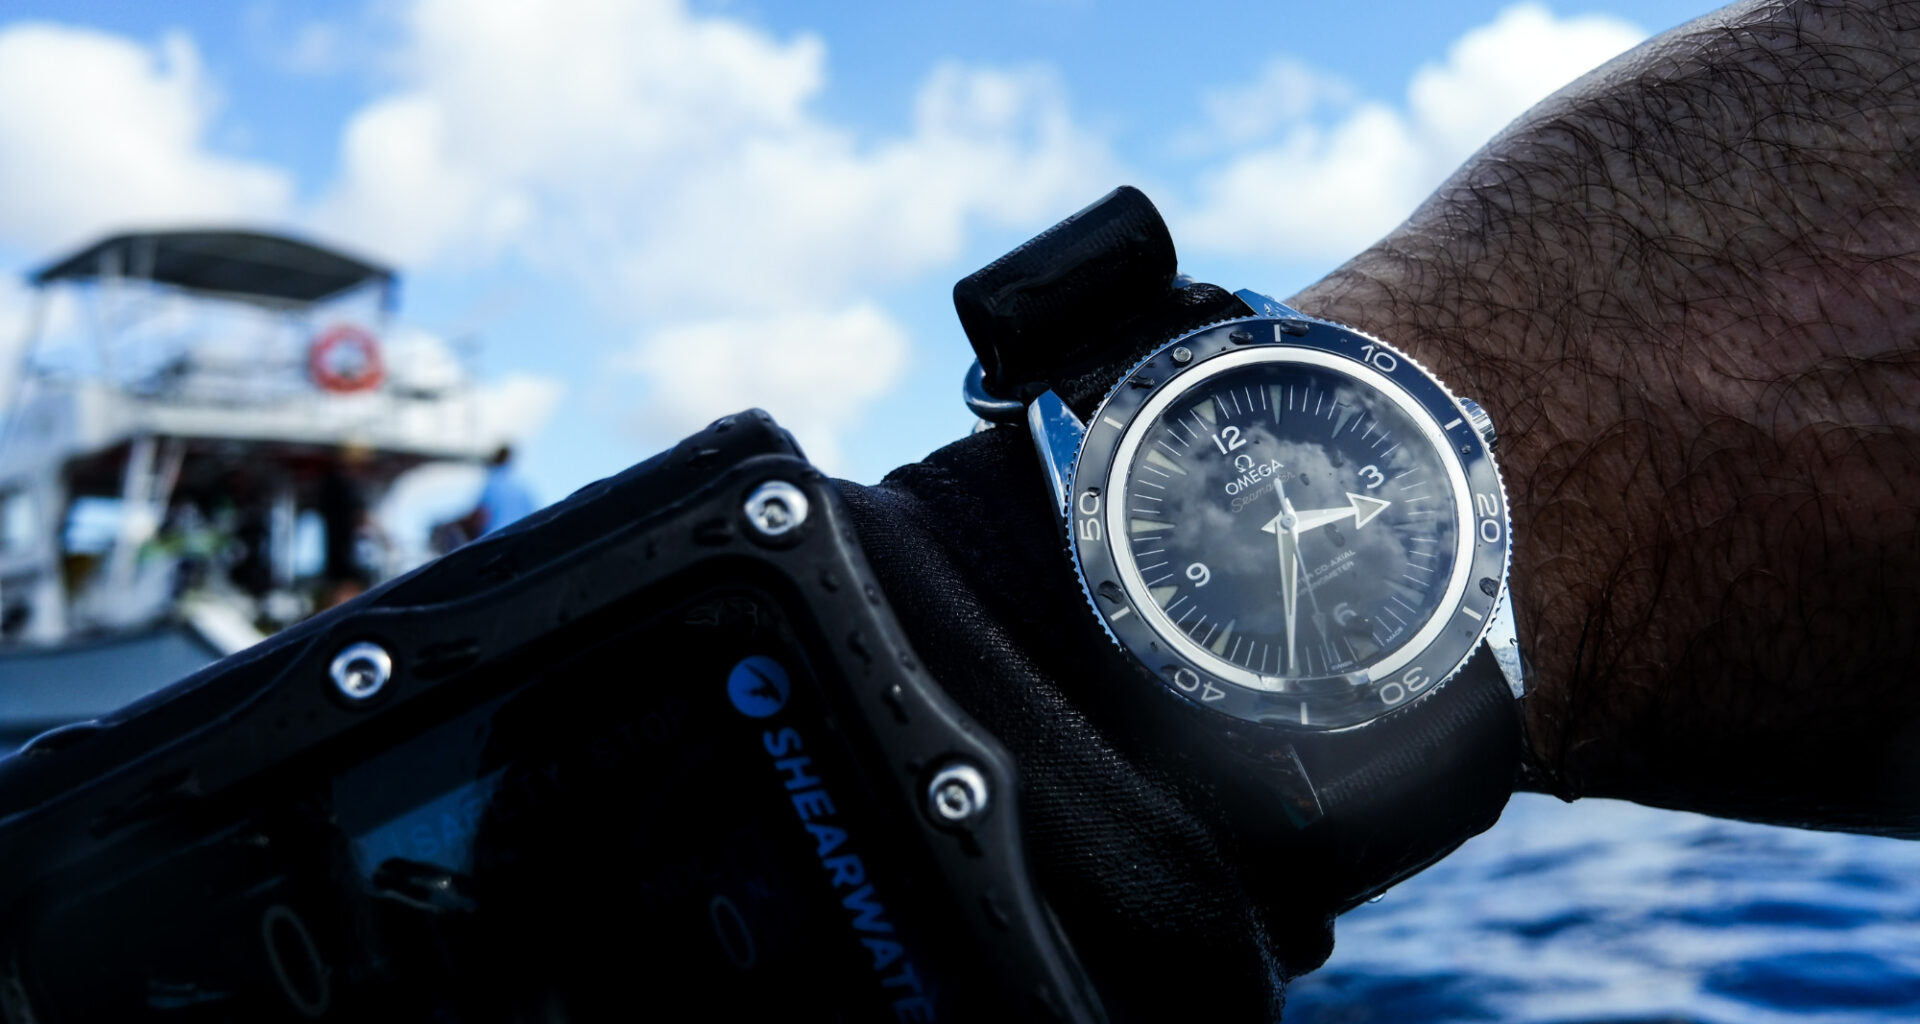 omega-seamaster-300-review-44